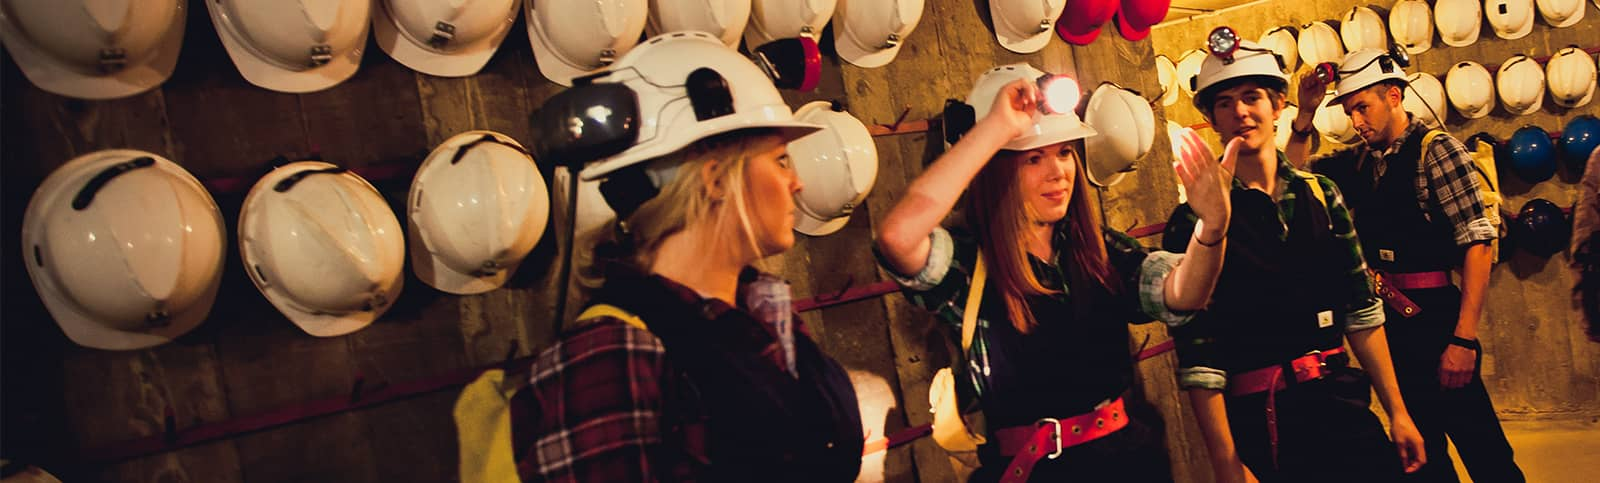 Putting helmets on for a Mine Experience Tour at Central Deborah Gold Mine